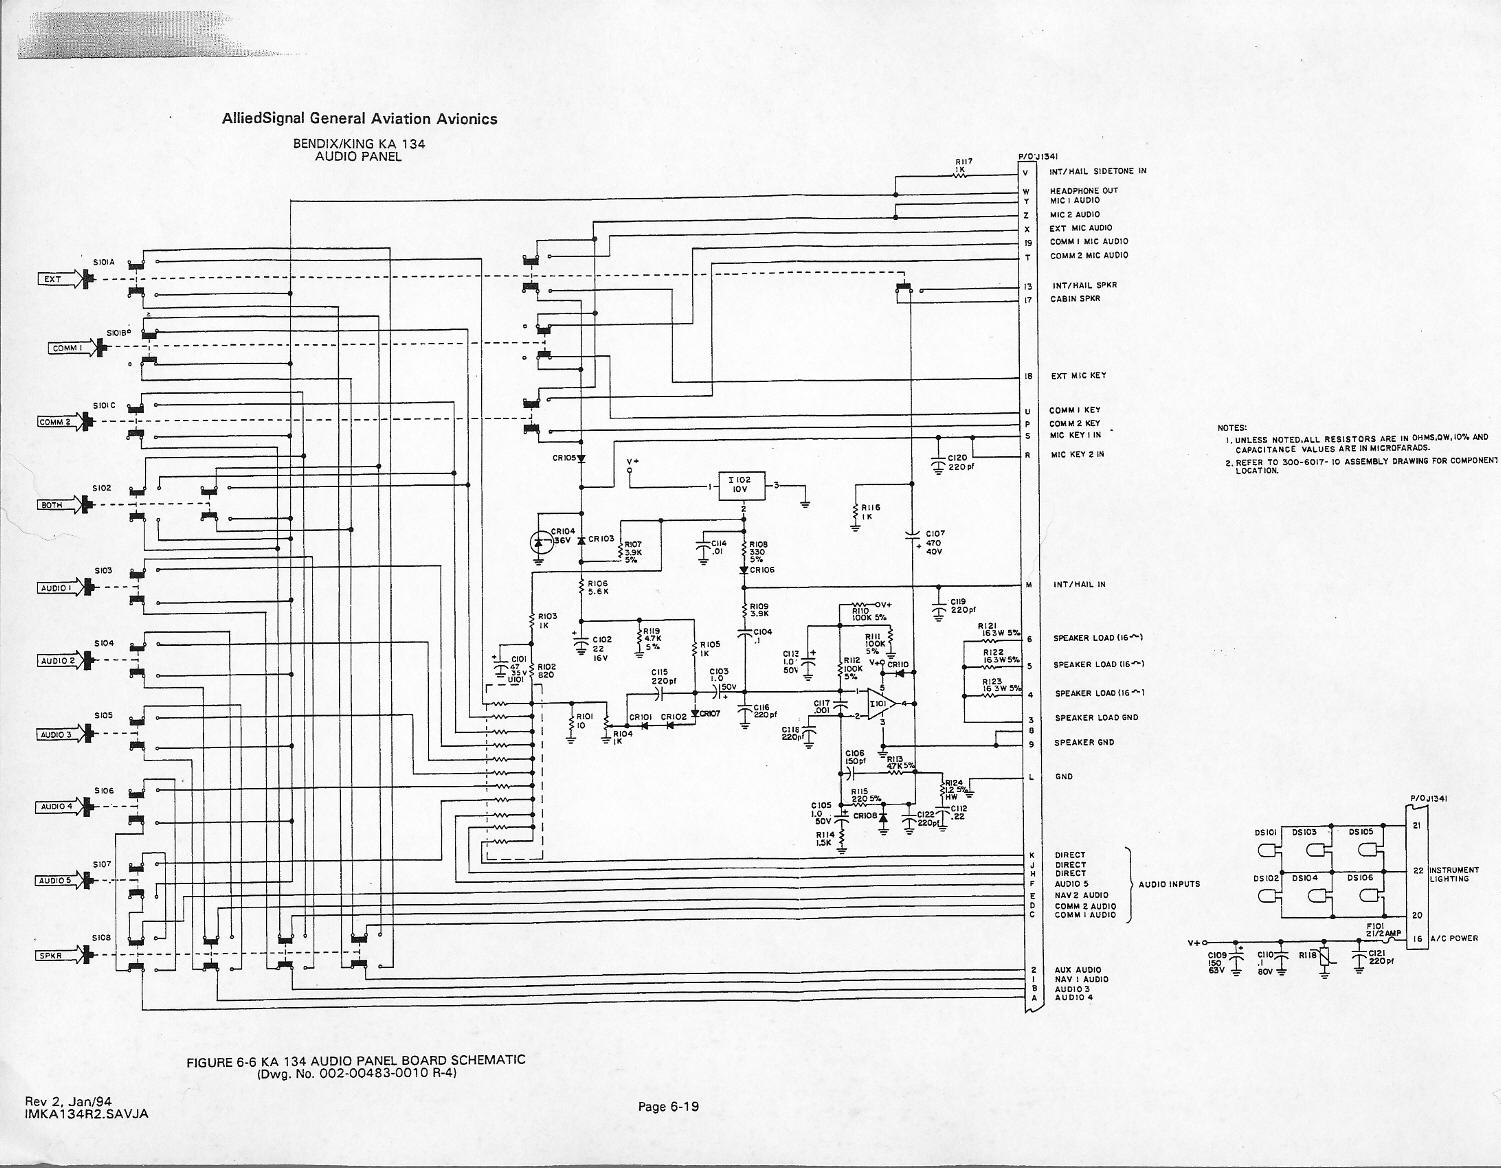 ka134_r4 first flight prep king ka 134 audio panel wiring diagram at suagrazia.org